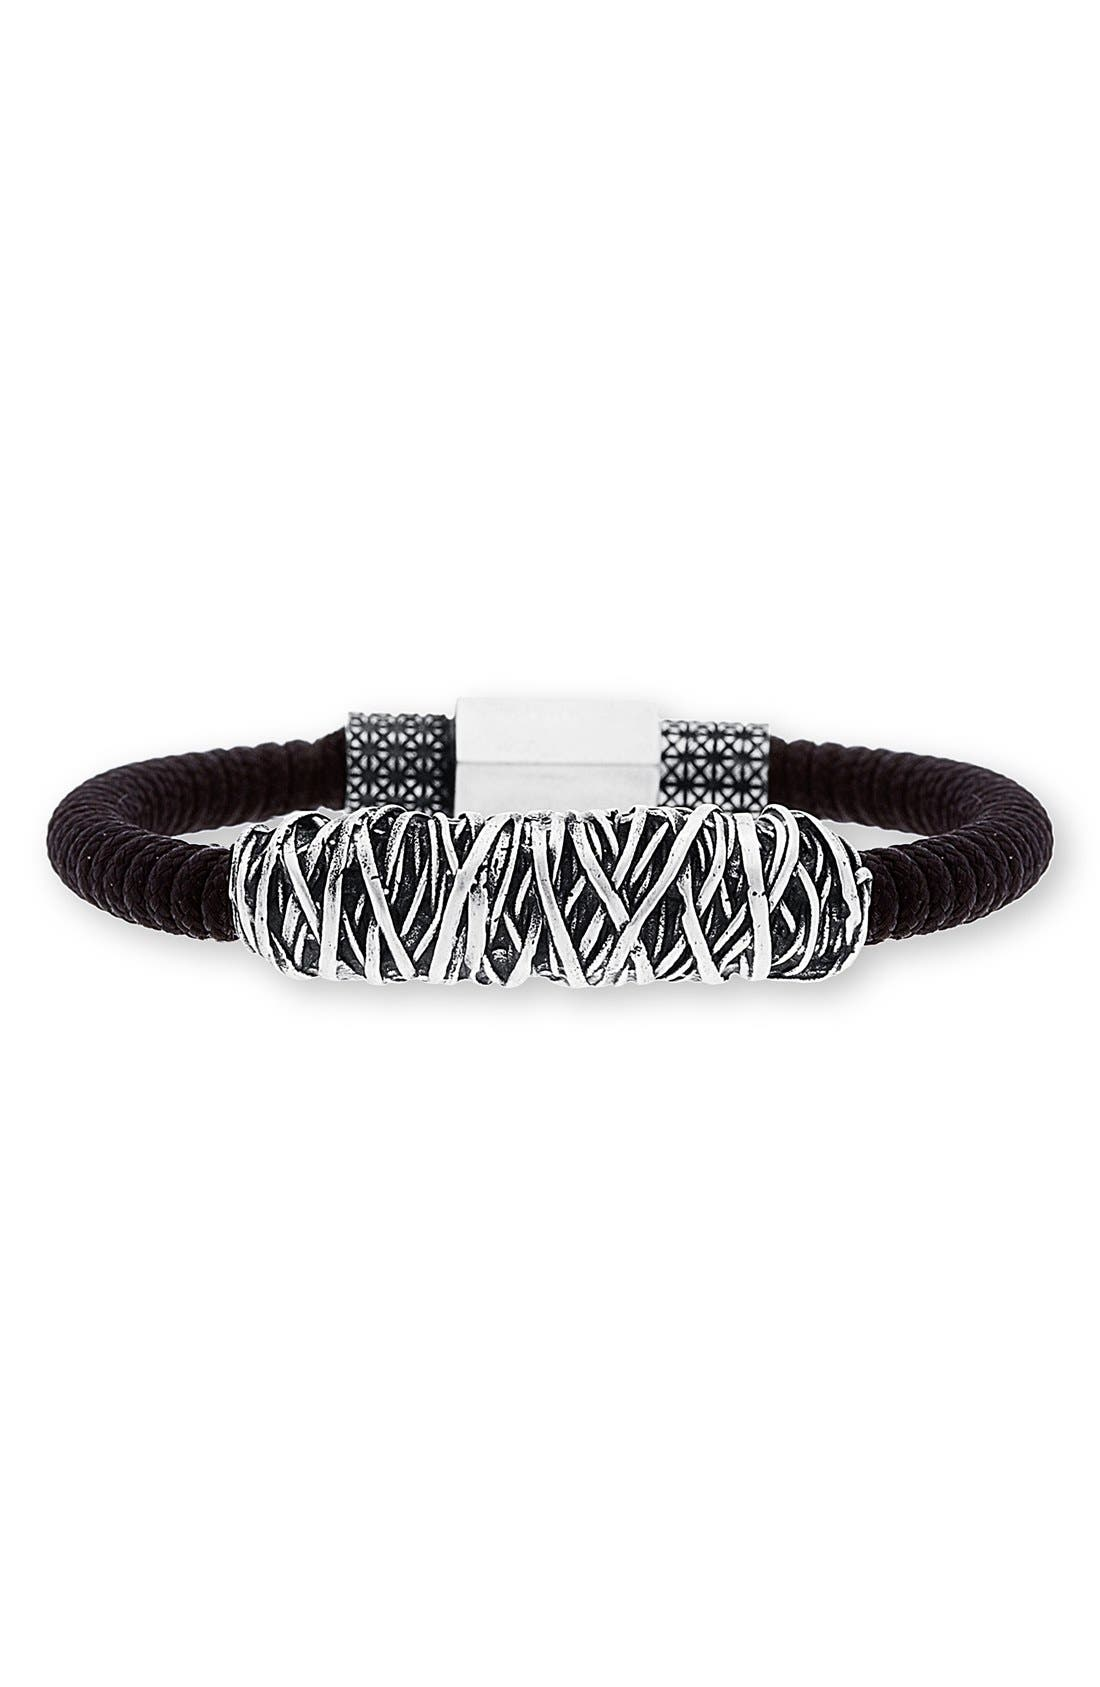 Twisted Metal Cord Bracelet,                         Main,                         color, Black